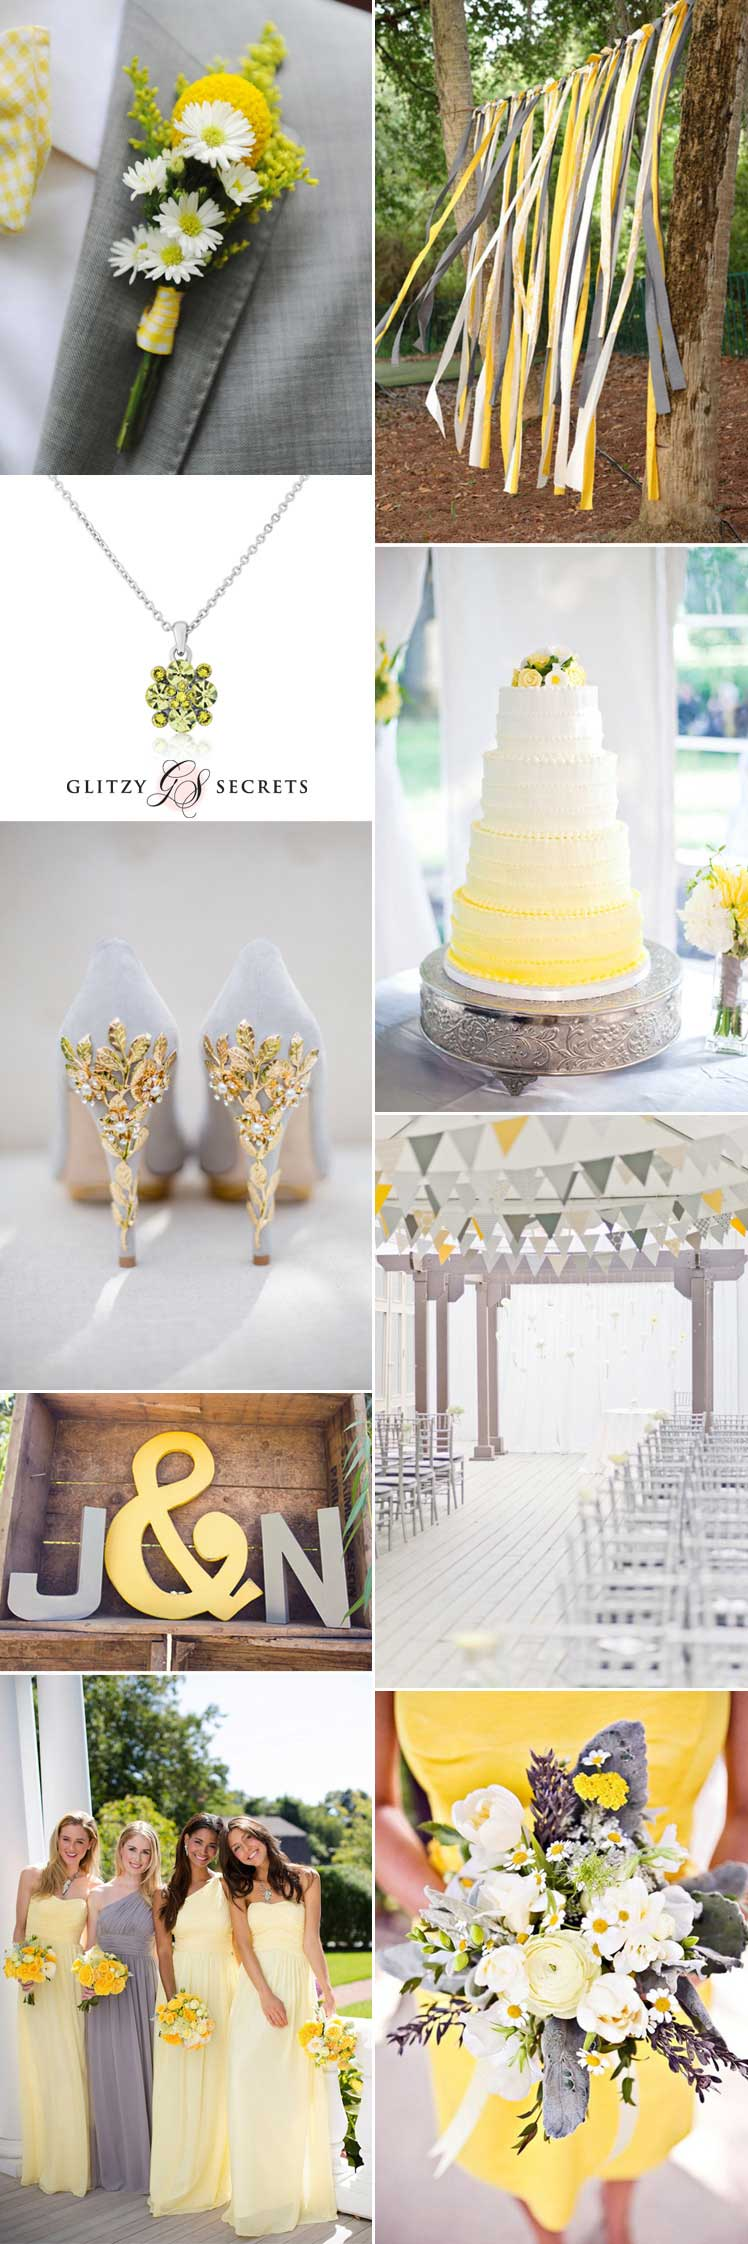 Yellow and grey theme wedding ideas and inspiration